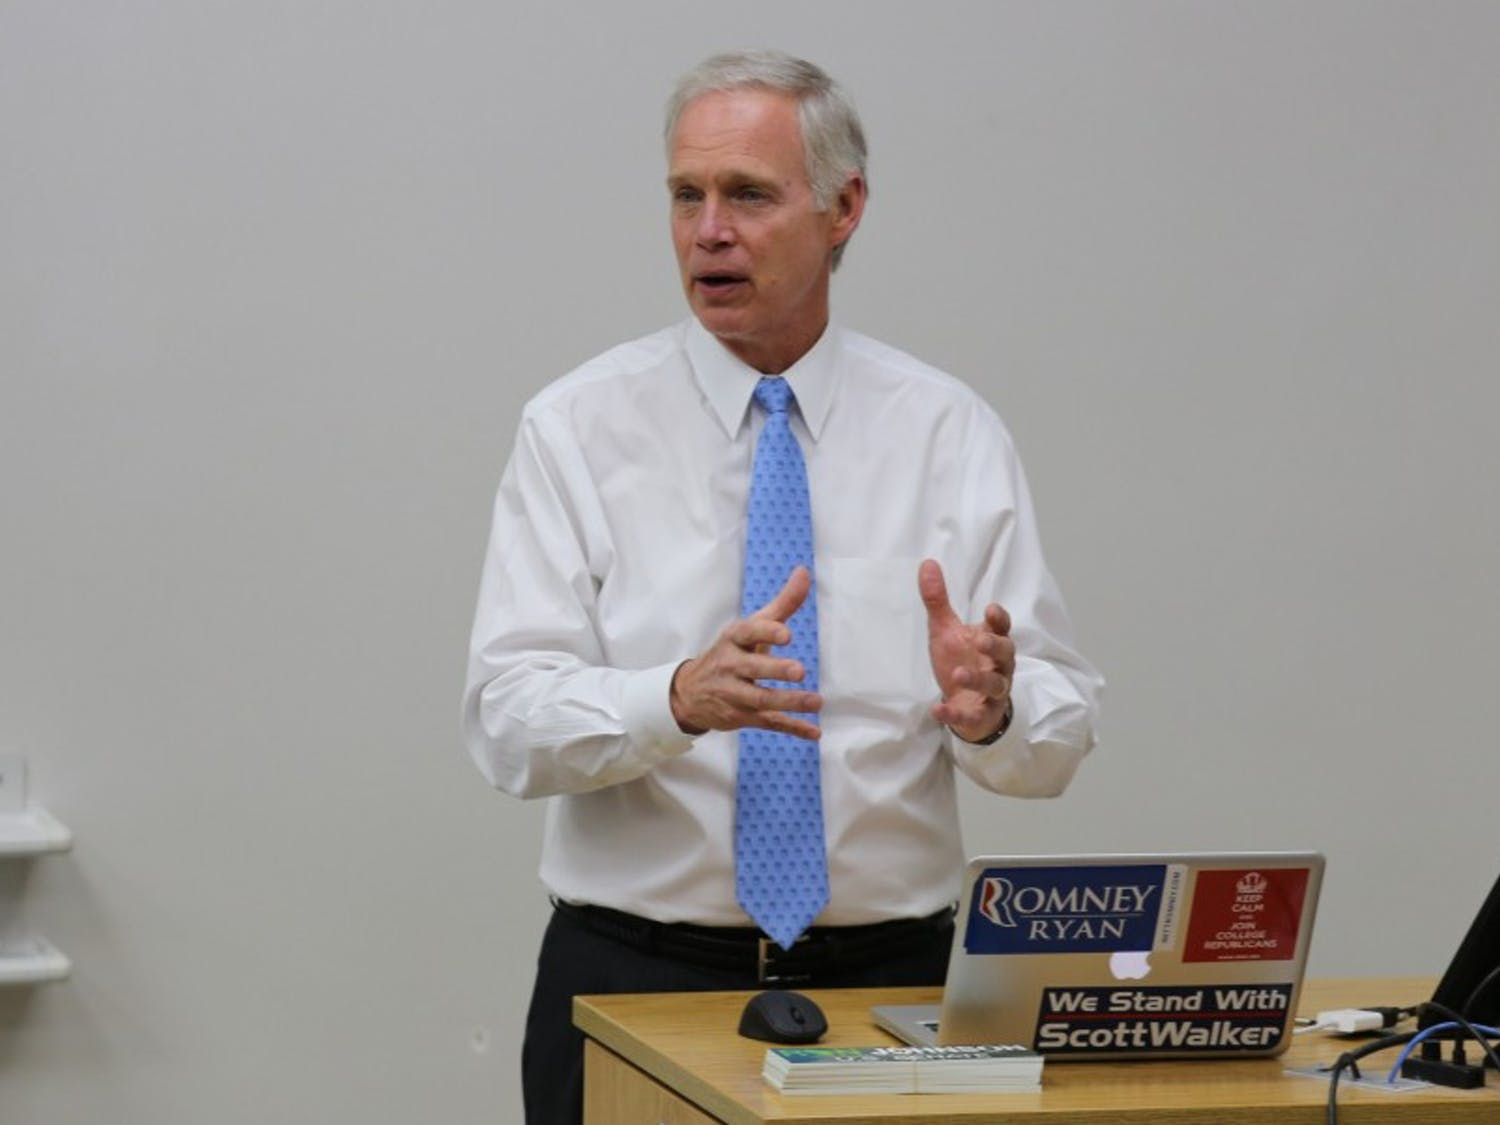 U.S. Sen. Ron Johnson called on FBI Director James Comey to release more information on his agency's investigation into a private email server run by Hillary Clinton.